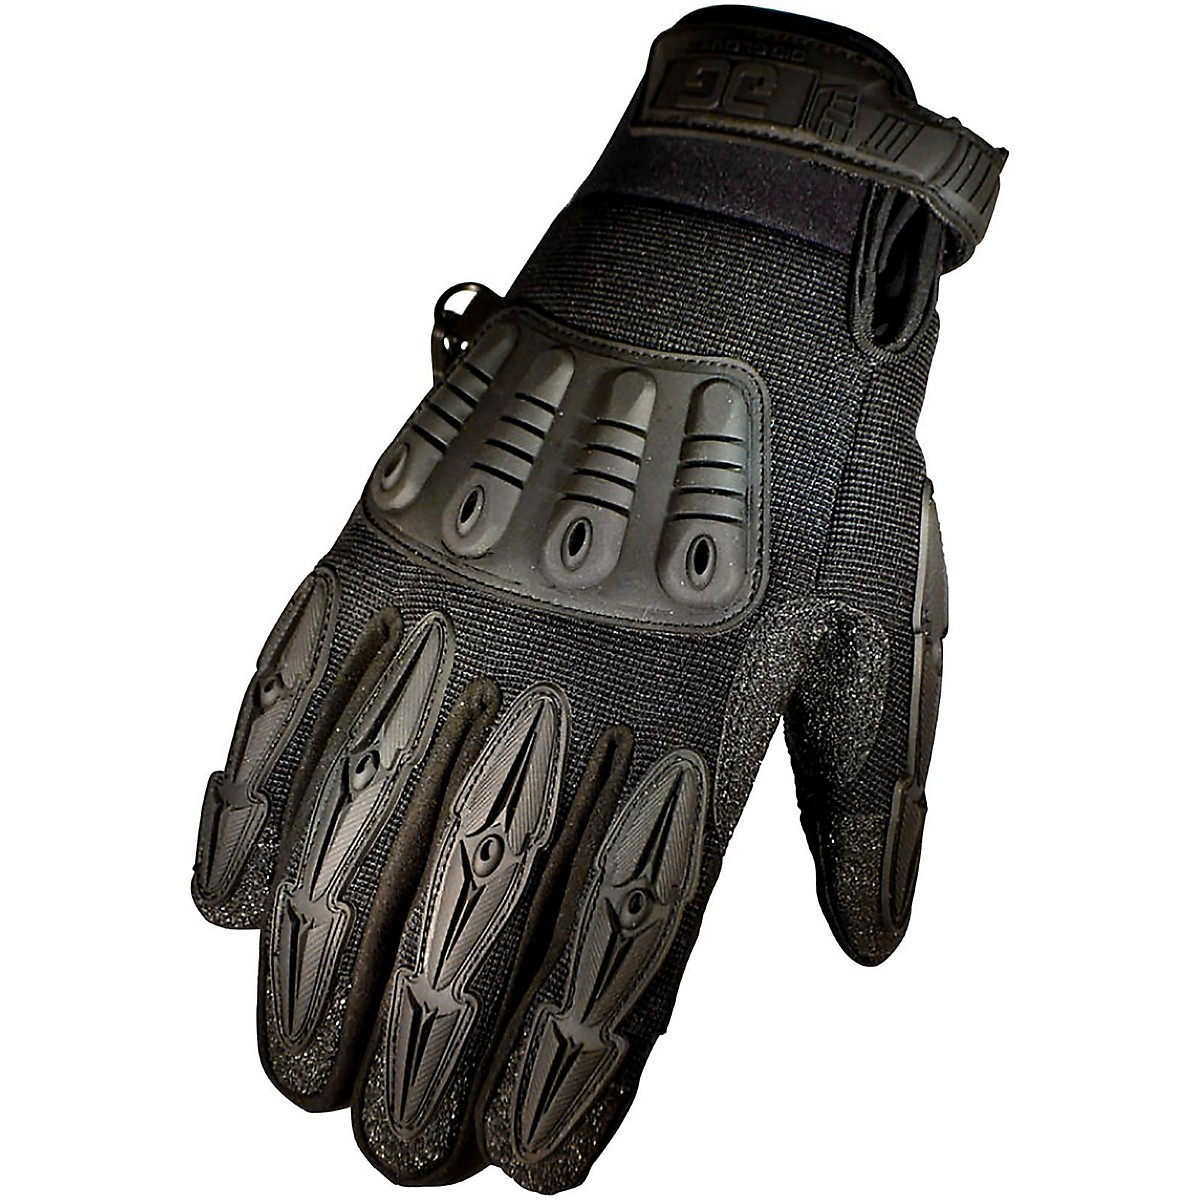 Gig Gear GG1011 Gig Gloves